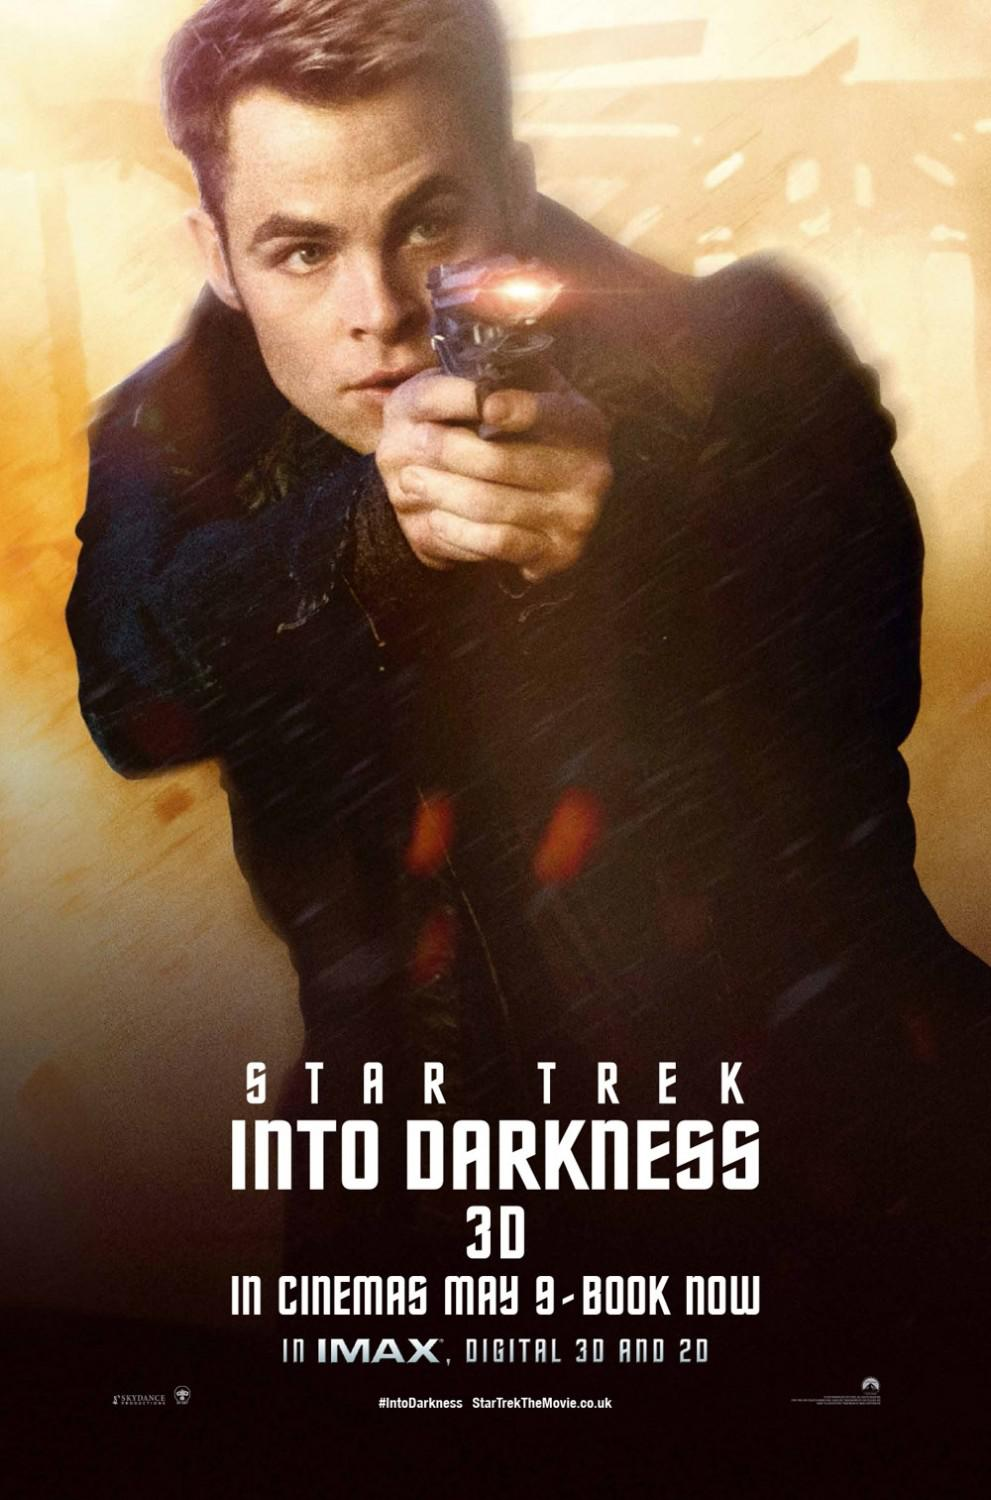 Star Trek 12 - Star Trek into Darkness - poster - young Kirk